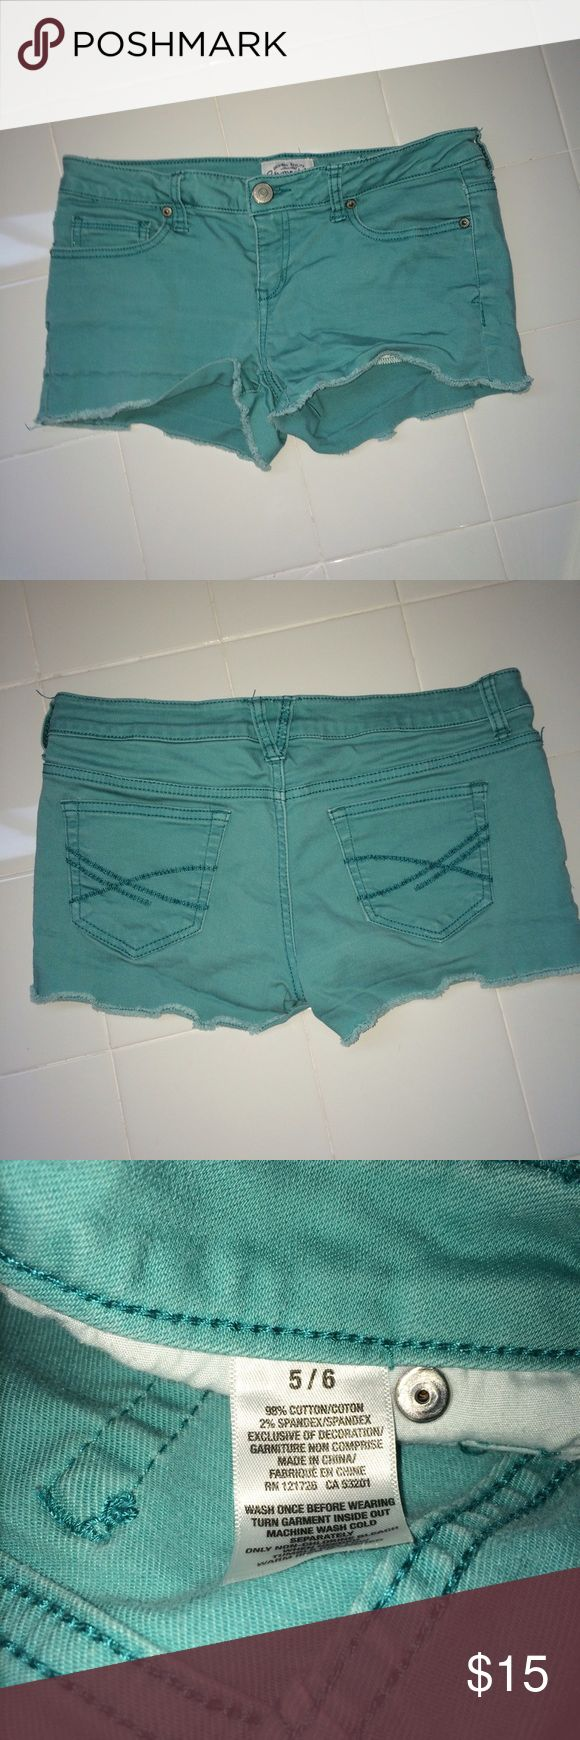 Aeropostale Shorts Comfortable teal shorts from Aeropostale Aeropostale Shorts